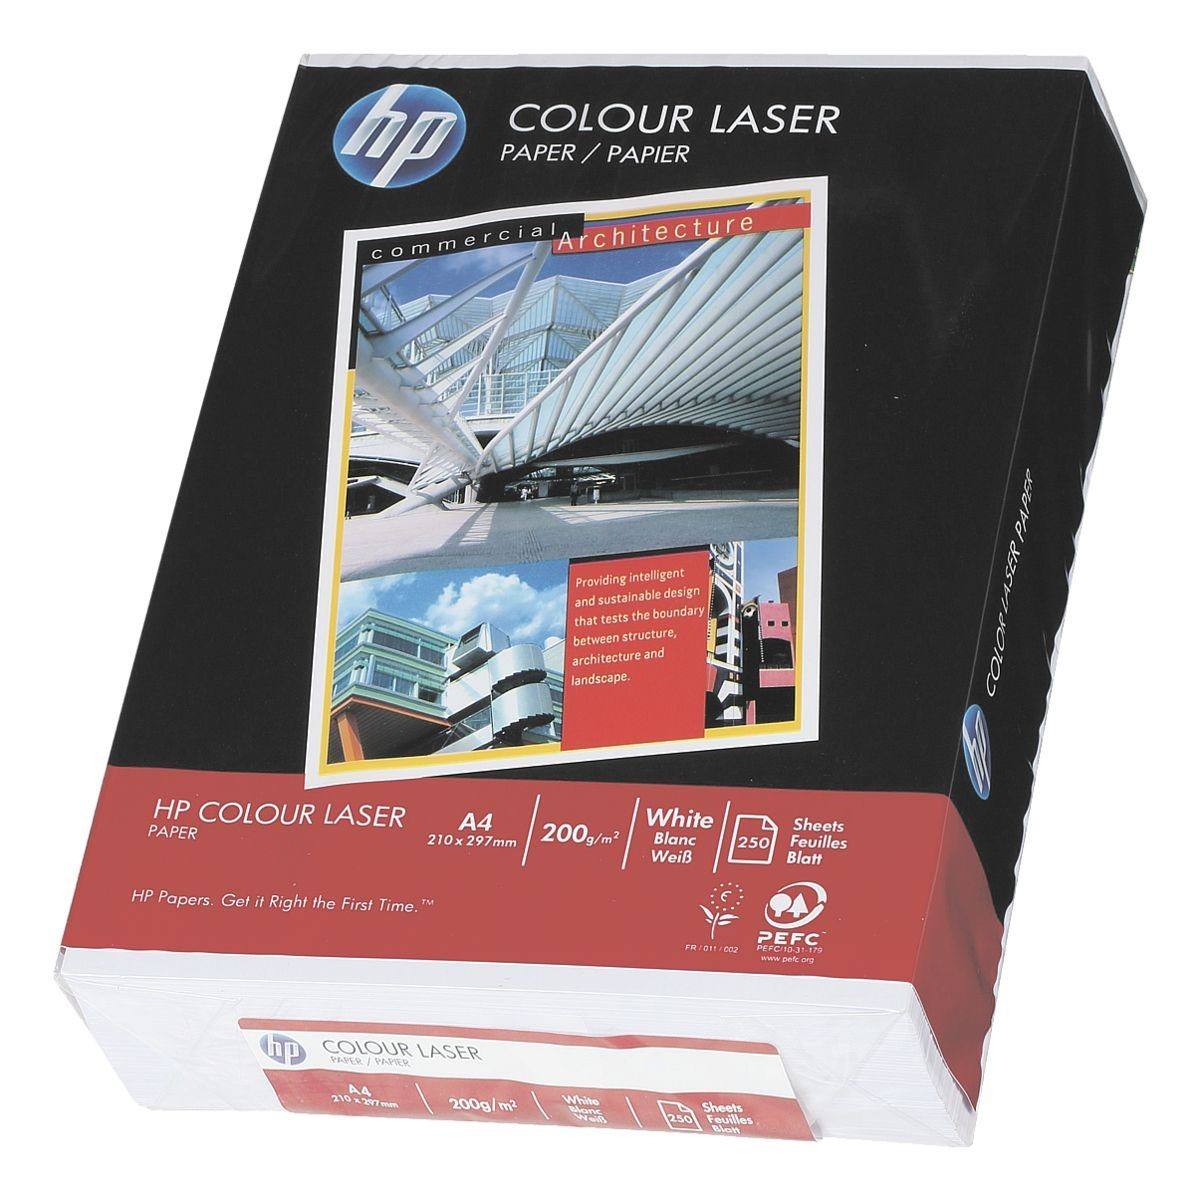 HP Farblaserpapier »Colour Laser«